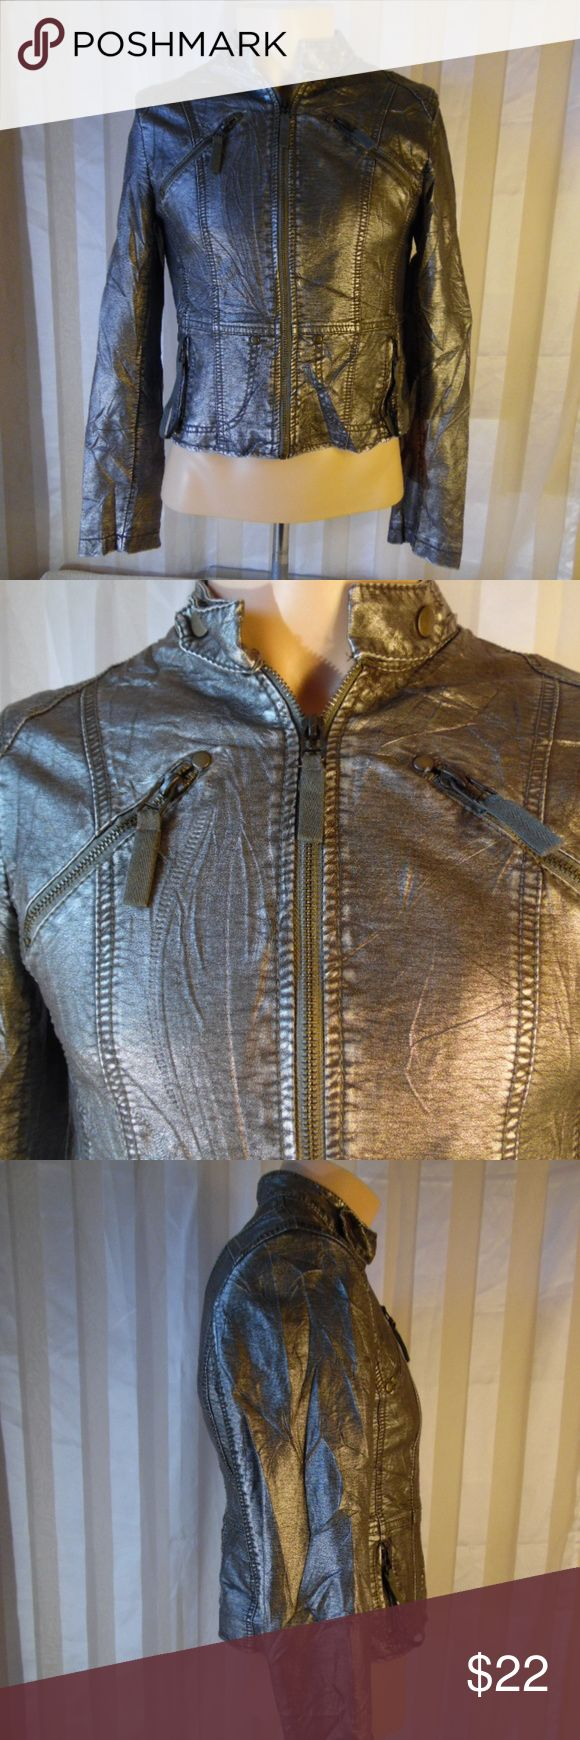 """Forever 21 Metallic Silver Zip Up Leather Jacket L Pre owned, light wear..EUC.. Brand Name:Forever 21 Gender: Women's Sleeve Length: 24""""  Main color: Silver  Material:100% Polyurethane leather Width arm pit to arm pit:17"""" Length back of collar to bottom hem:20""""Condition: Width: 17.5""""Grade: 9.5/10 Forever 21 Jackets & Coats Utility Jackets"""